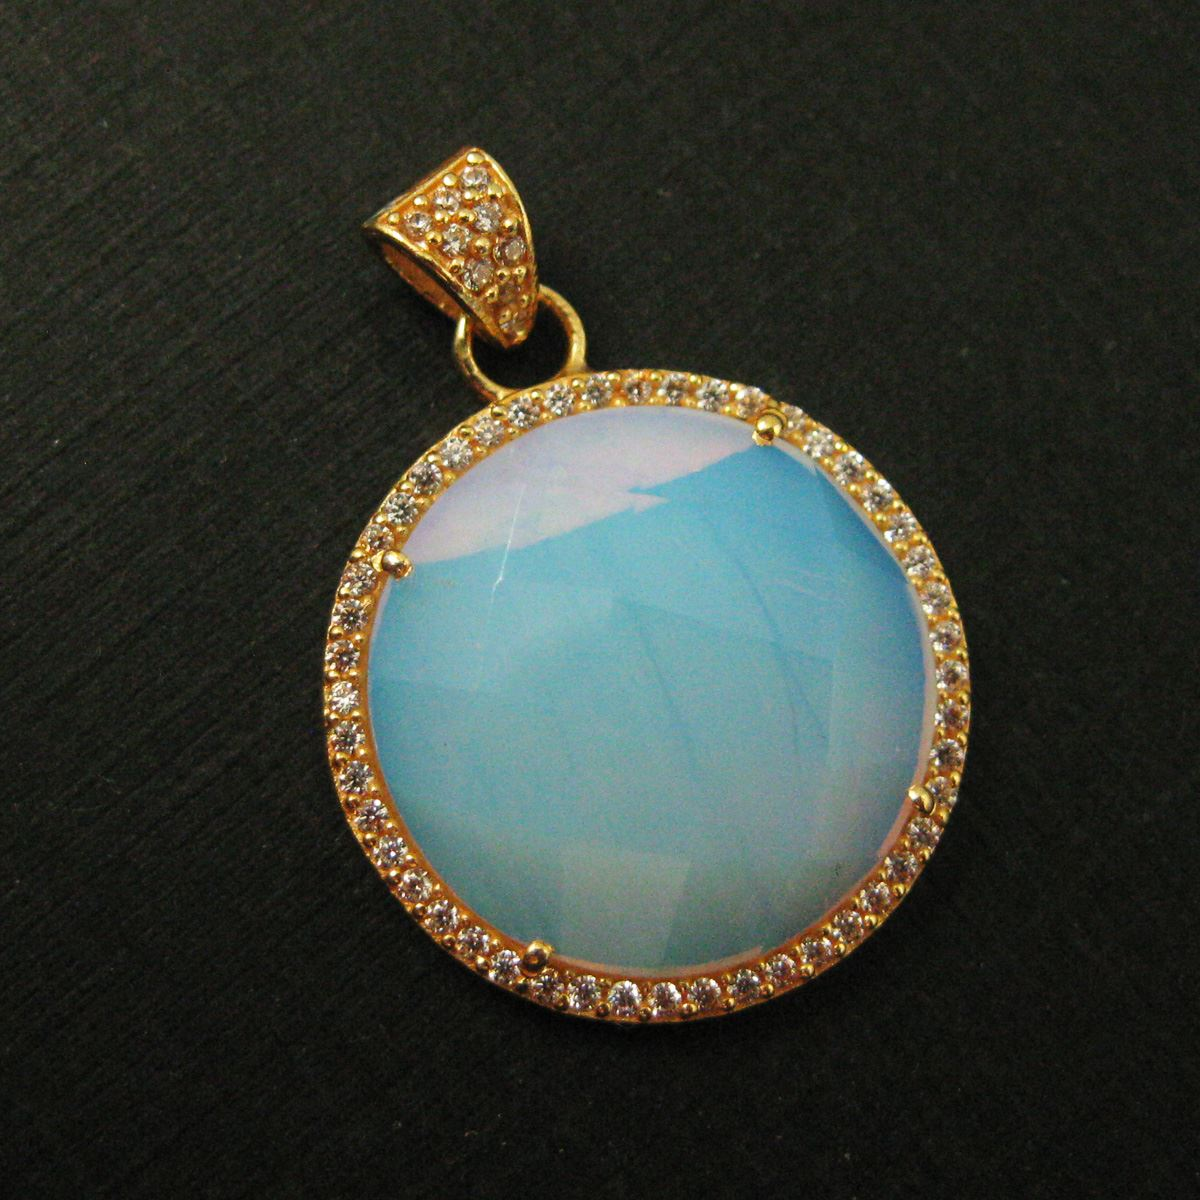 22k Gold plated Sterling Silver Pave Bezel Gemstone Pendant - Cubic Zirconia Pave Setting -  Round Faceted Stone- Opalite Quartz- 21mm